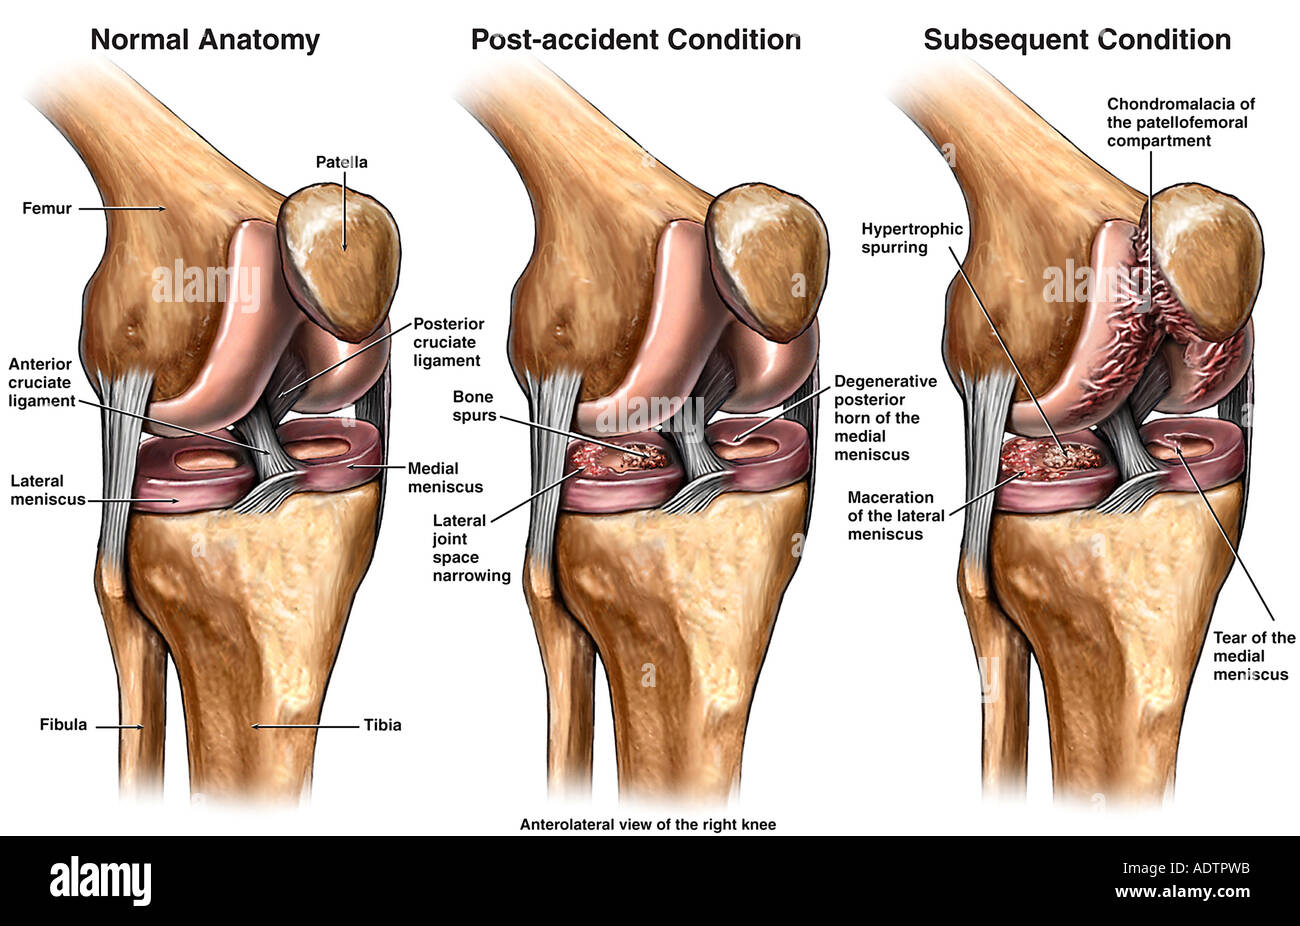 Chondromalacia - Progression of Right Knee Injury - Stock Image